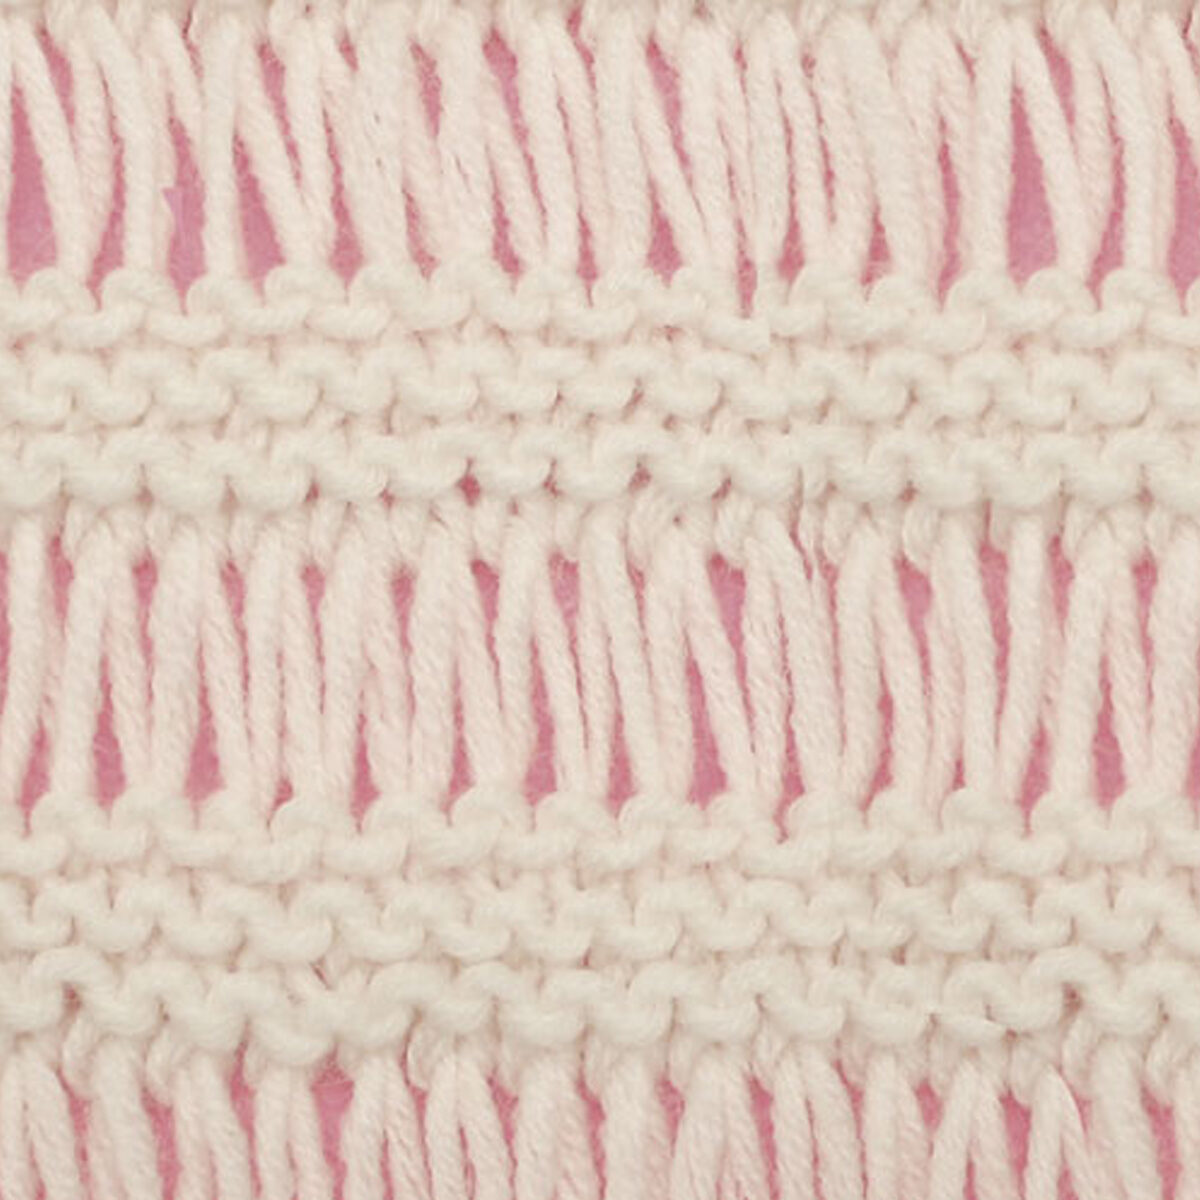 Drop Stitch Knitting Pattern texture in white color yarn atop pink background.